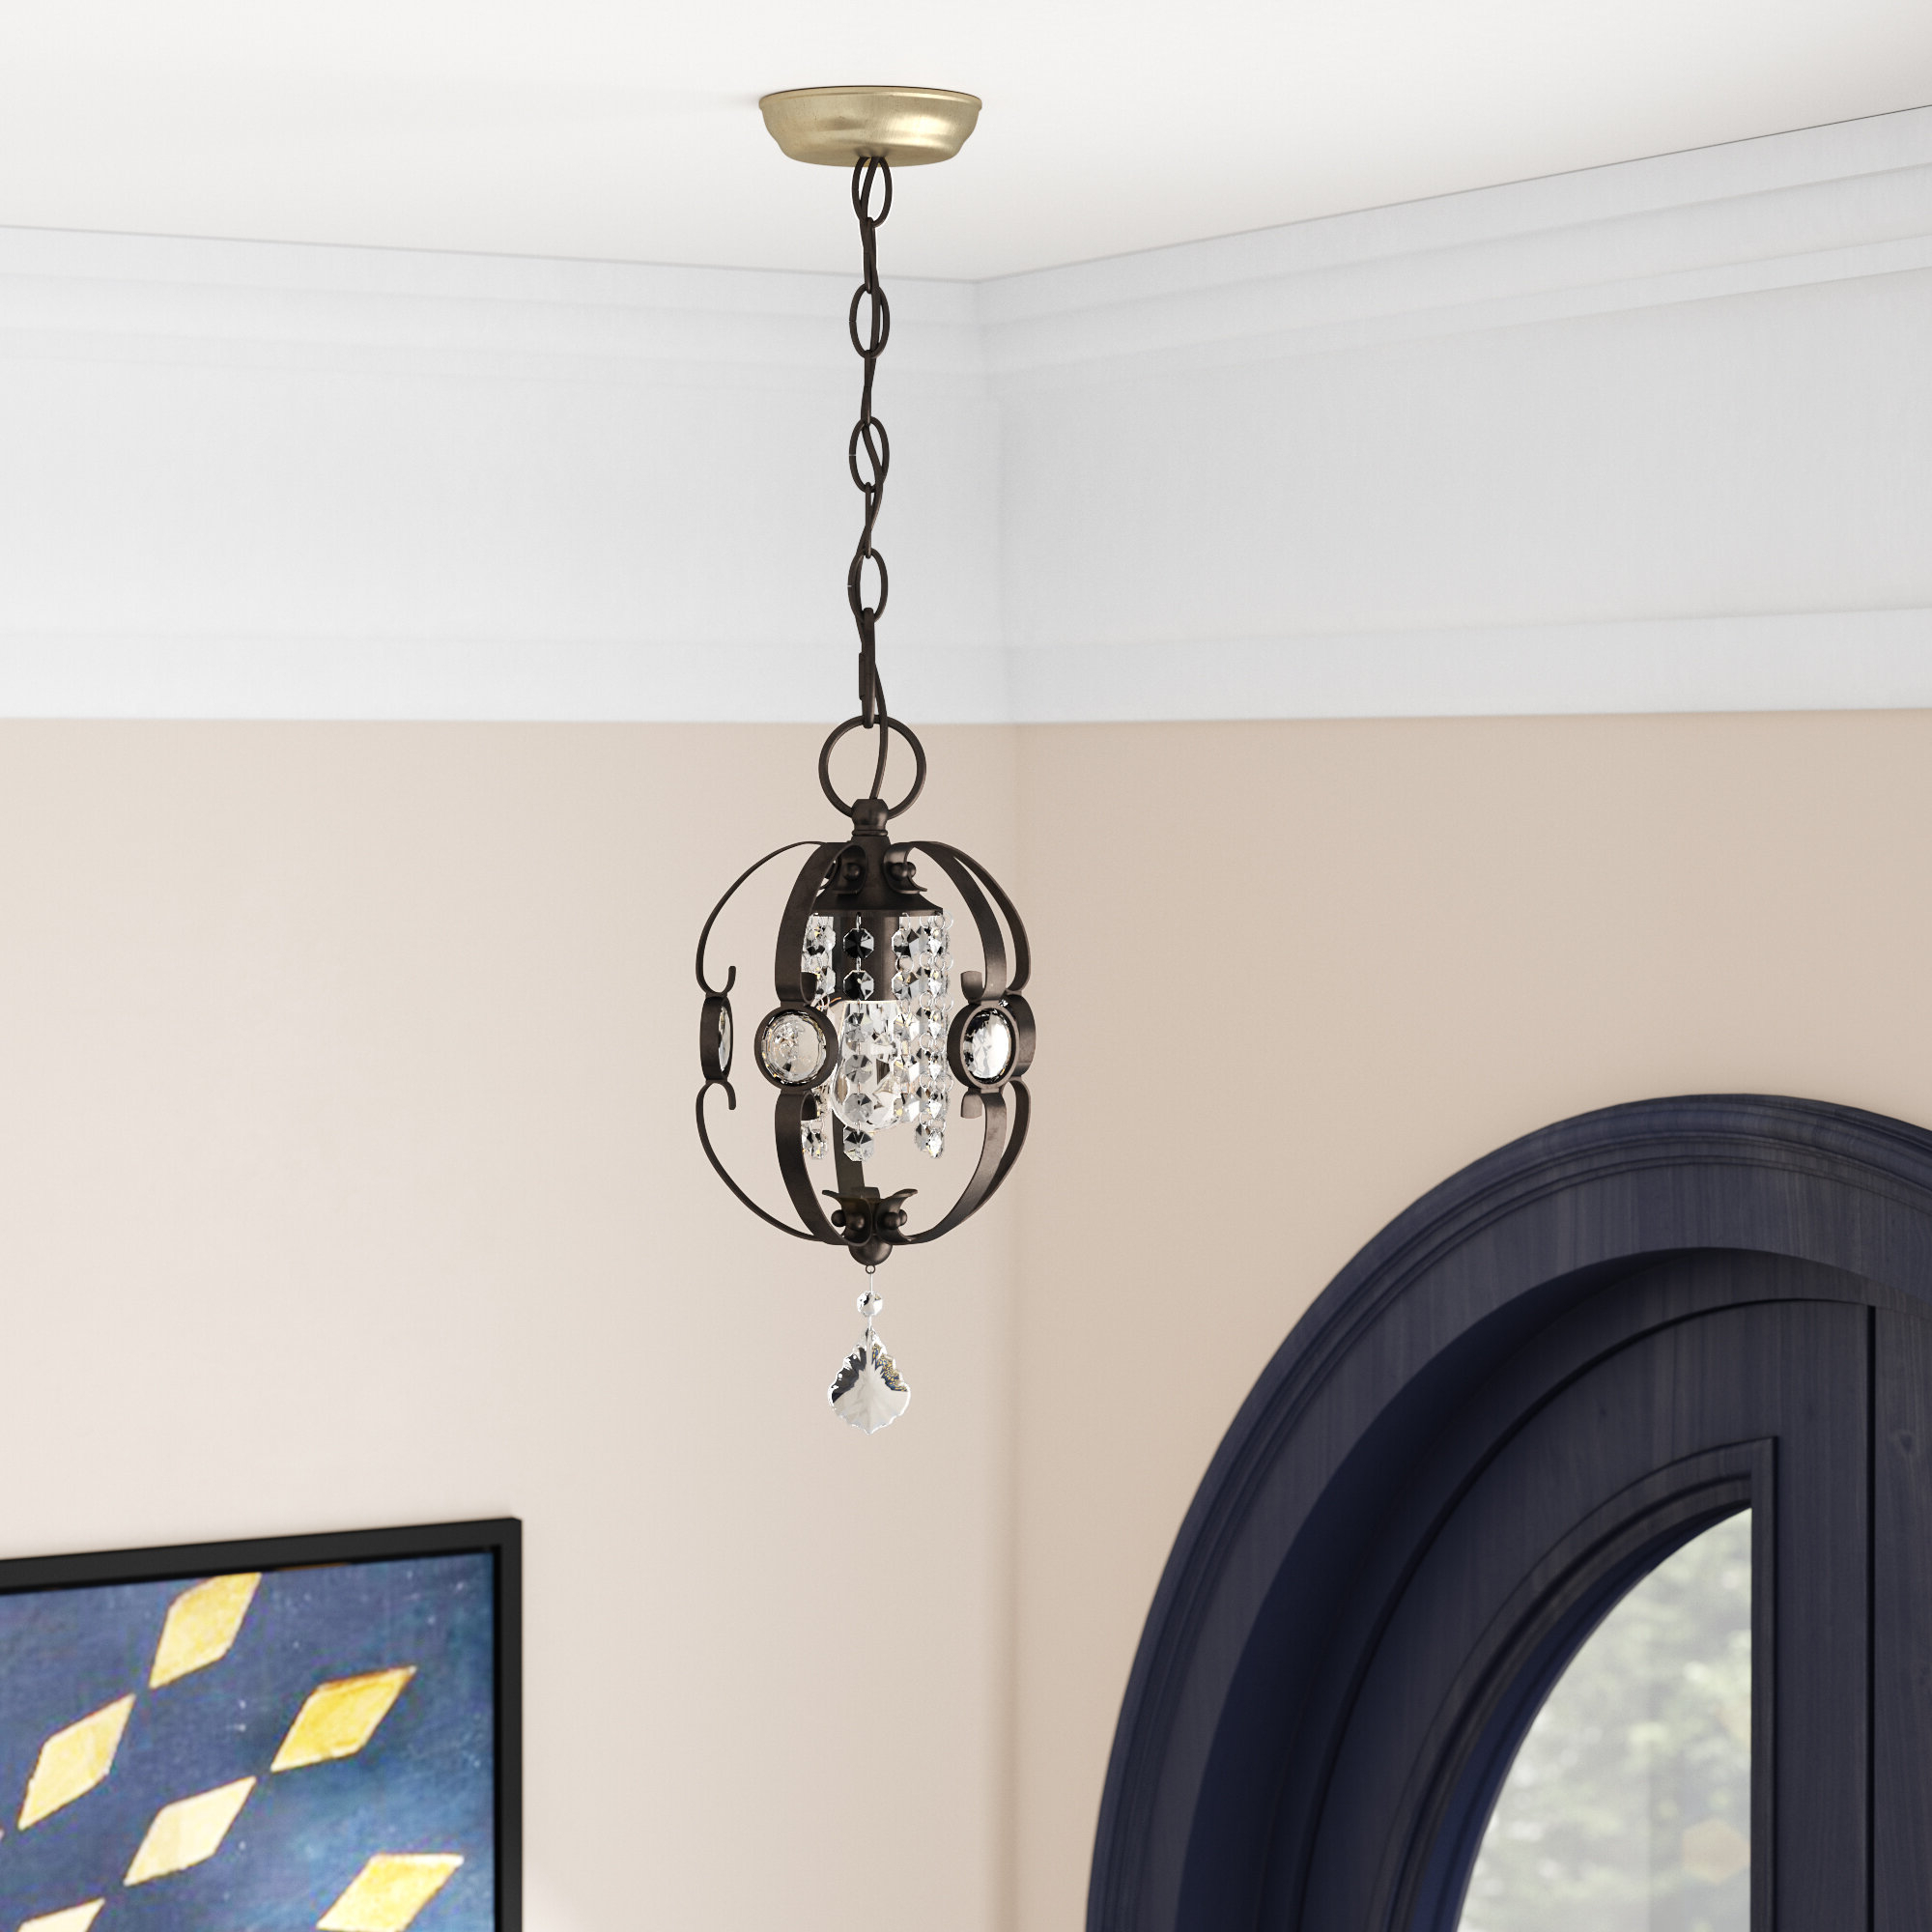 Popular Willa Arlo Interiors Hermione 5 Light Drum Chandelier Regarding Hermione 1 Light Single Drum Pendants (Gallery 14 of 20)